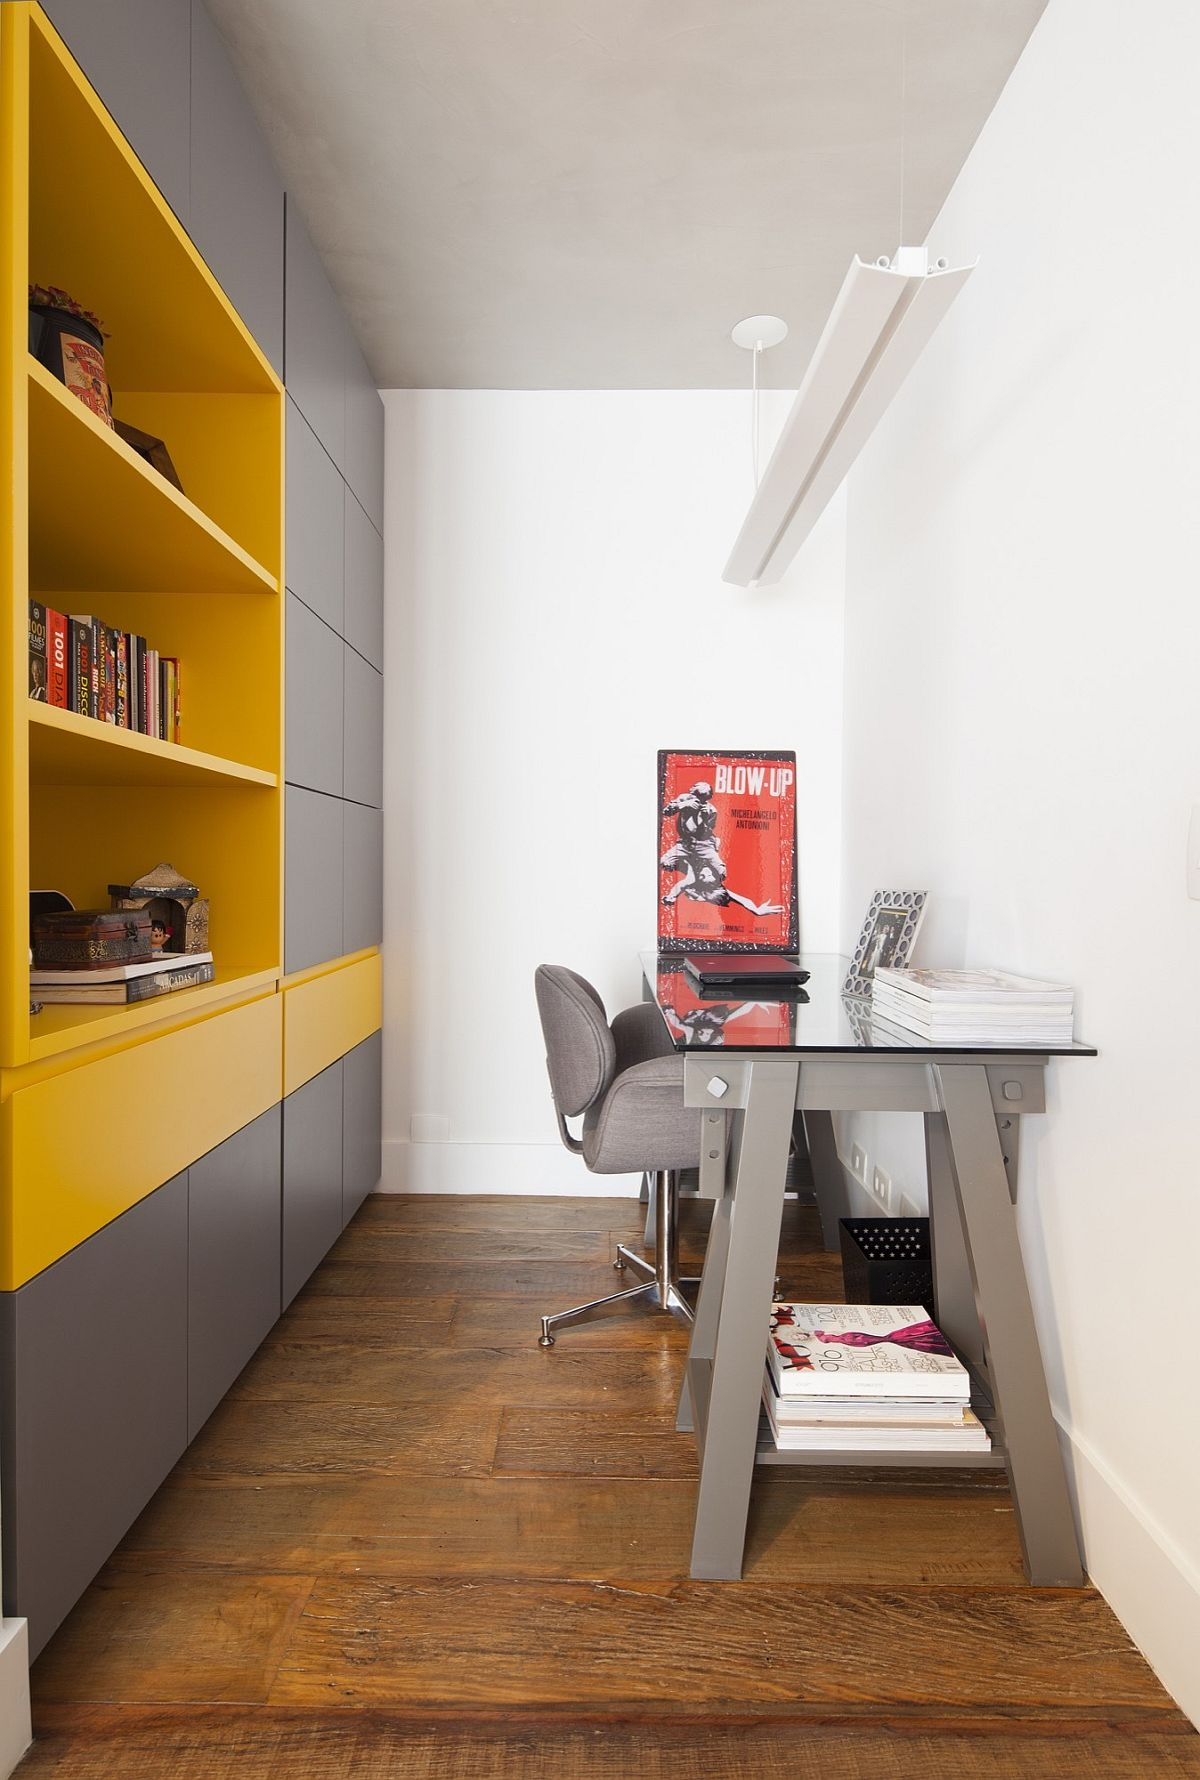 Home office with gray cabinets along with bright, open shelves in yellow